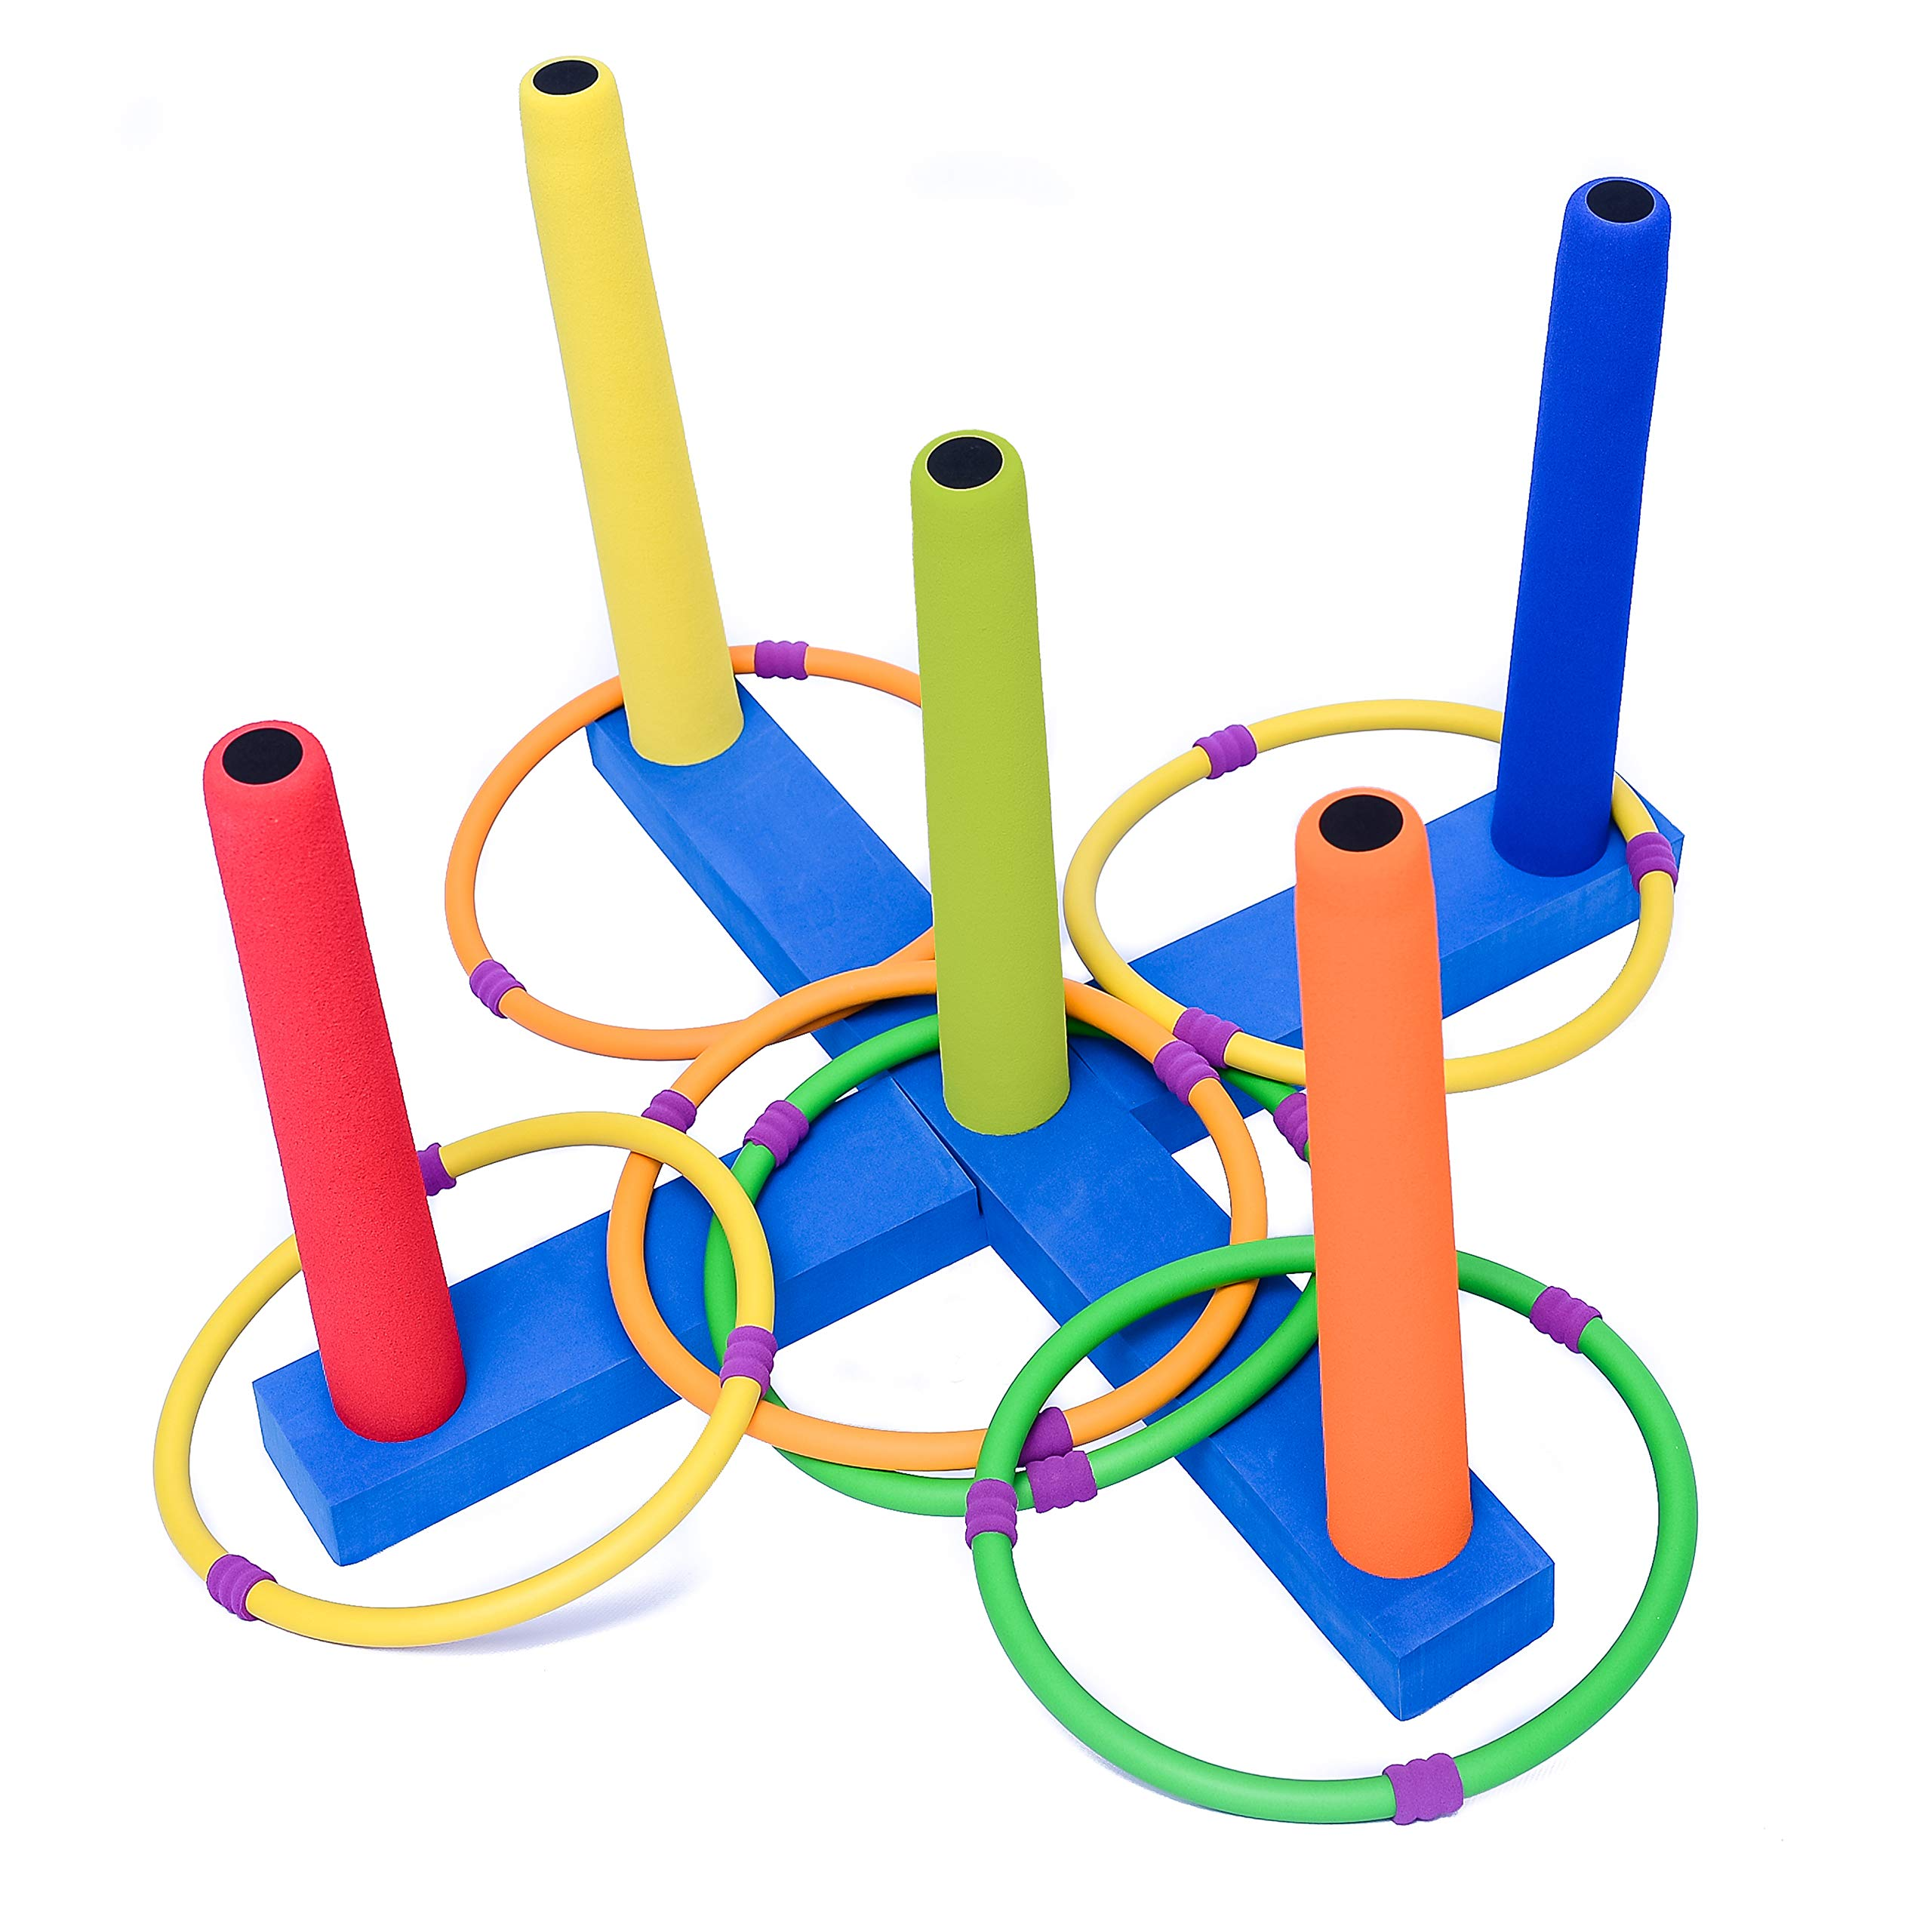 Kiddie Play Ring Toss Game for Kids with 6 Rings